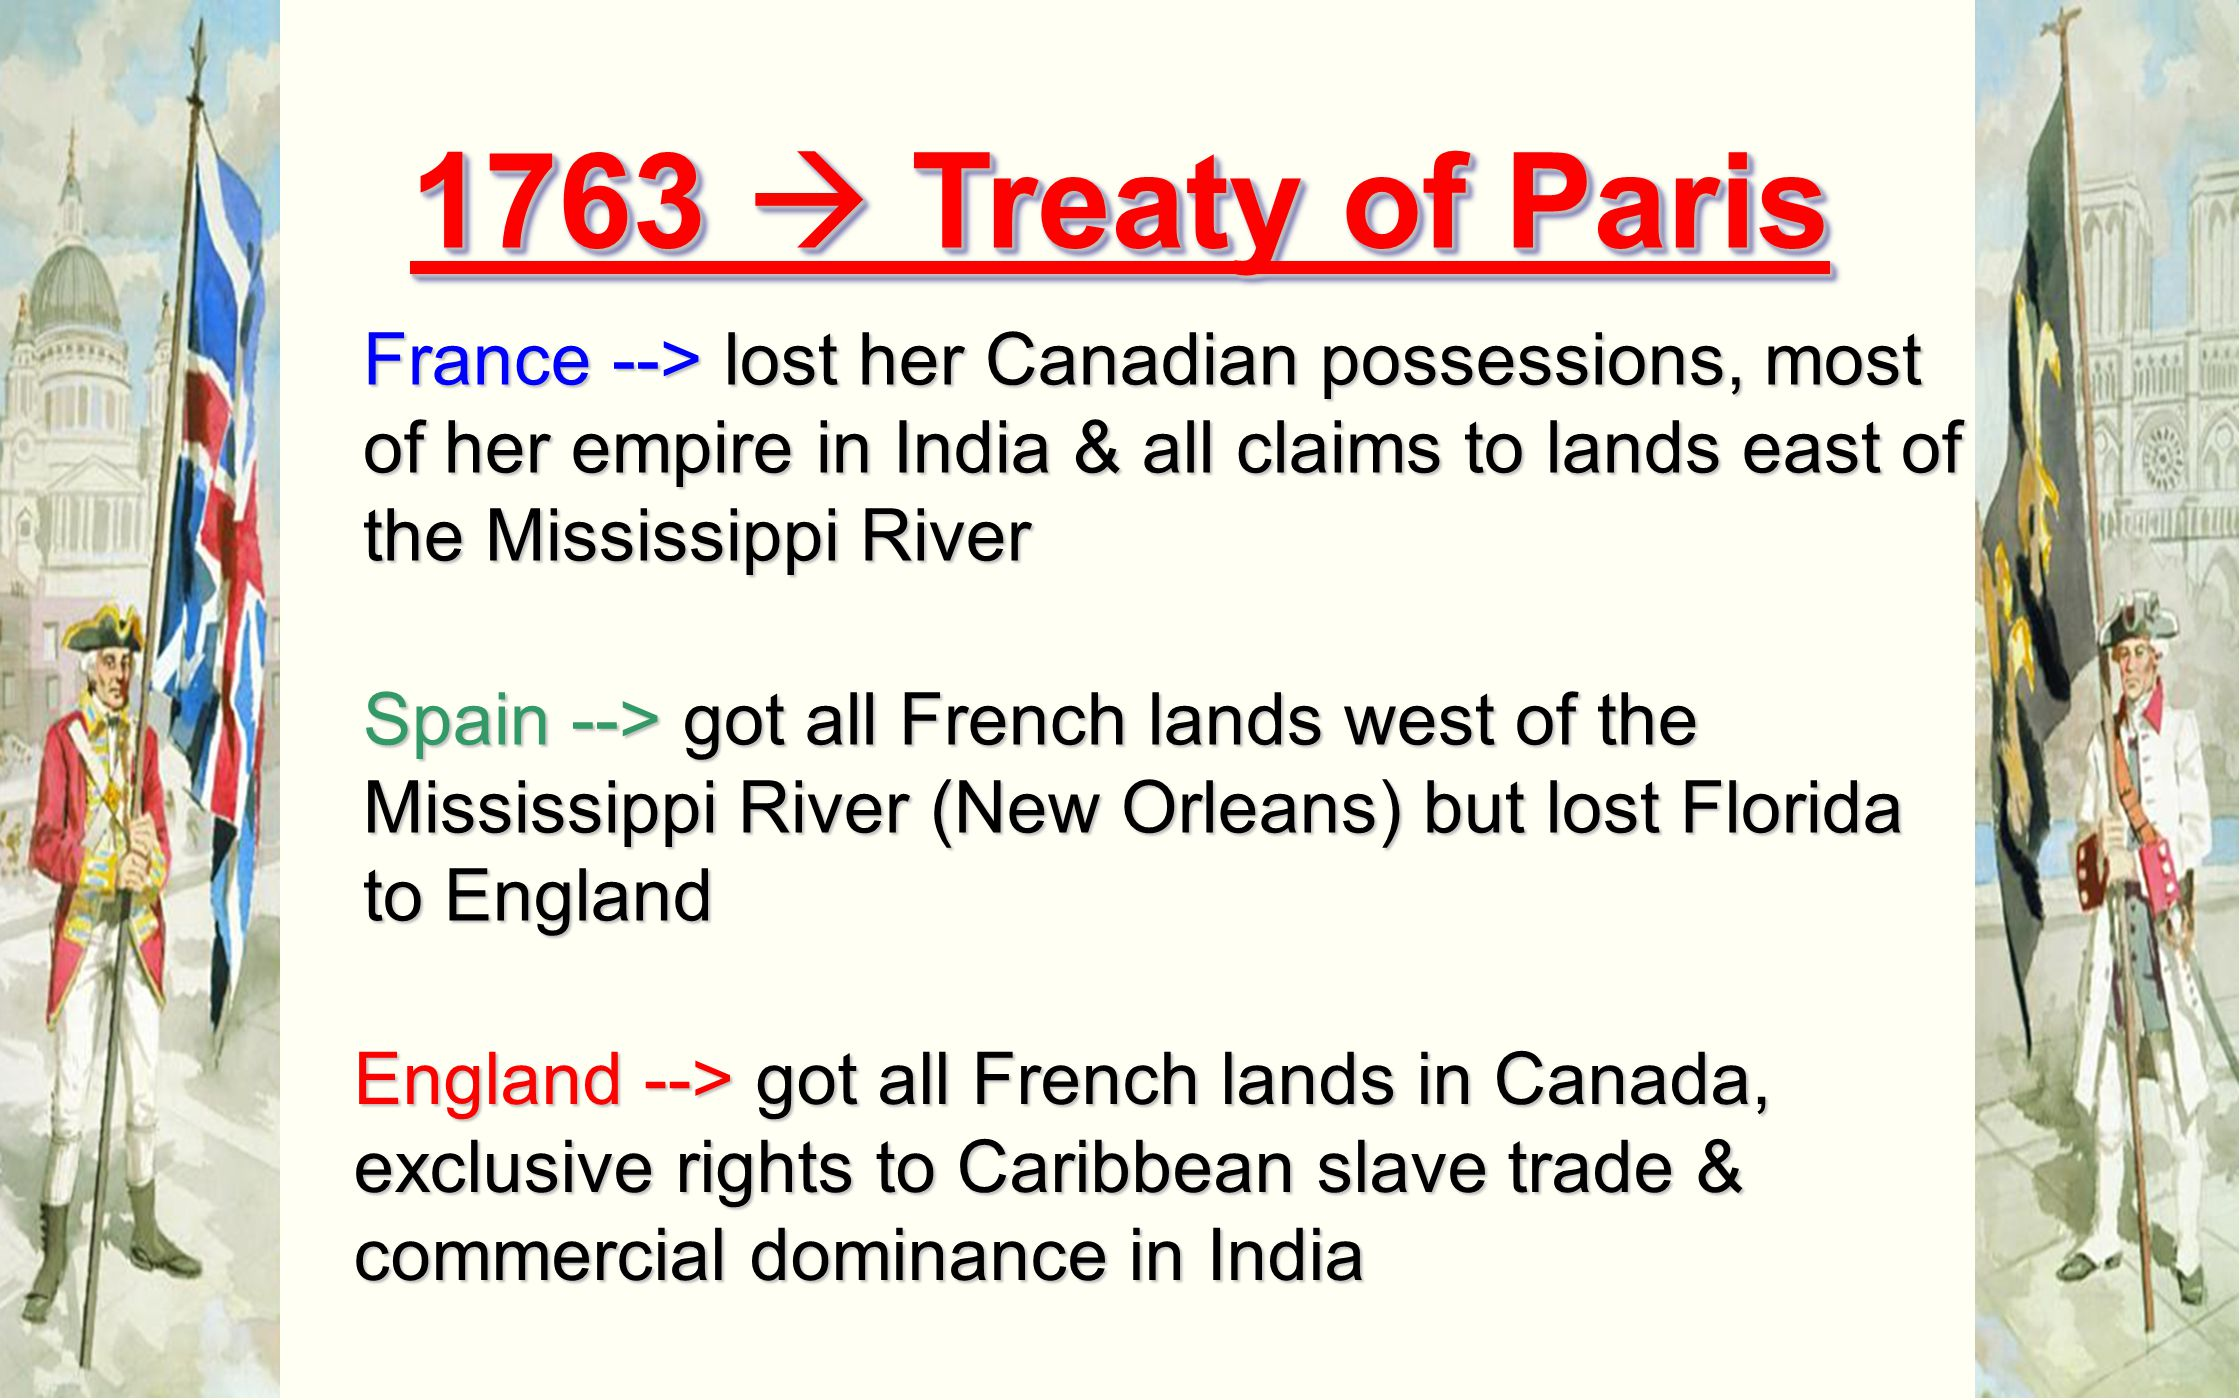 1763  Treaty of Paris France --> lost her Canadian possessions, most of her empire in India & all claims to lands east of the Mississippi River.